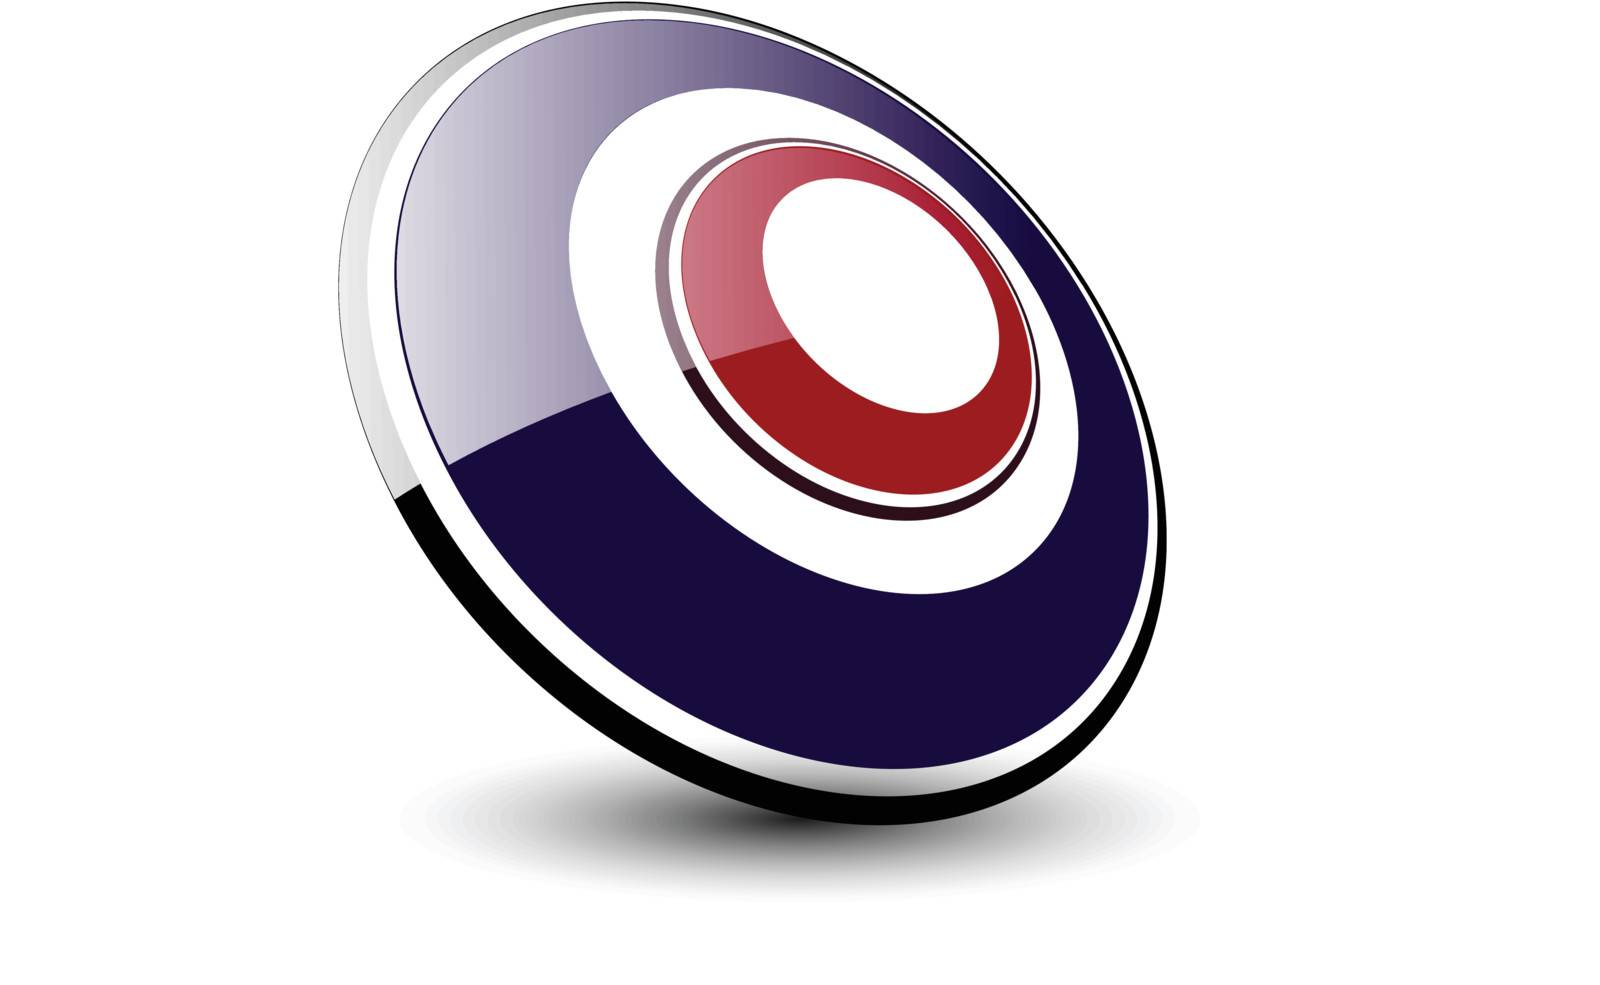 Logo 3d ellipse, blue and red vector.